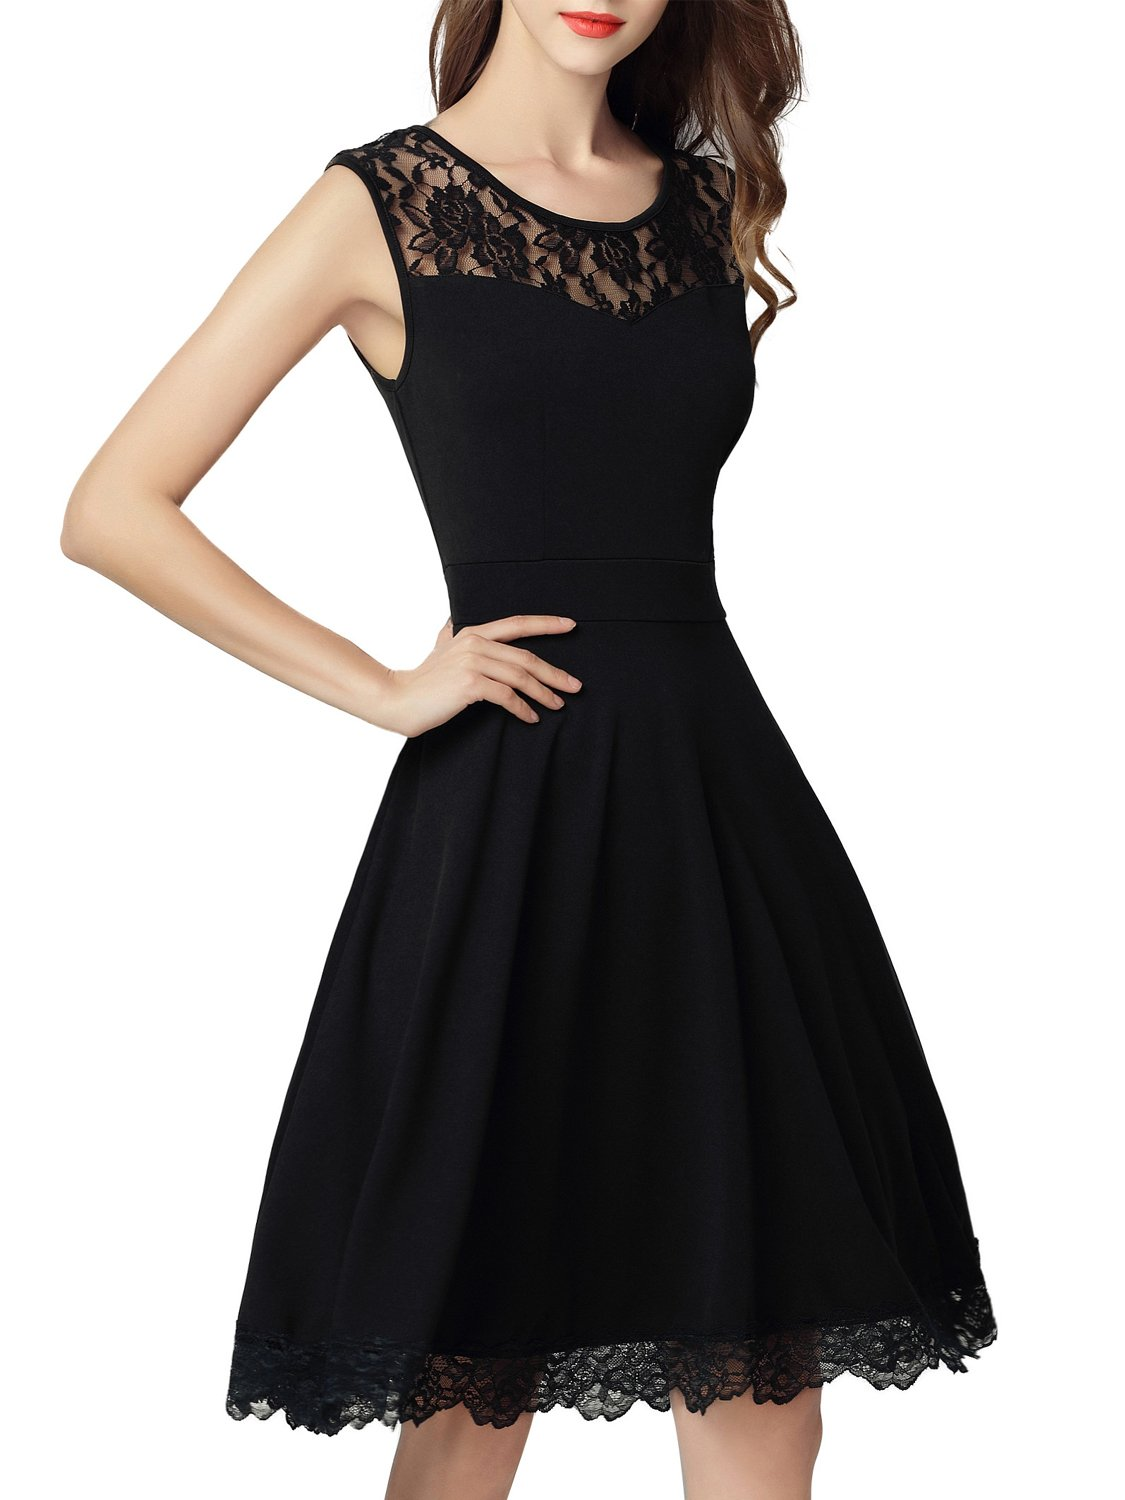 Dresms Women Sleeveless Lace Floral Elegant Cocktail Dress Crew Neck Knee Length (Black, Small) by Dresms (Image #1)